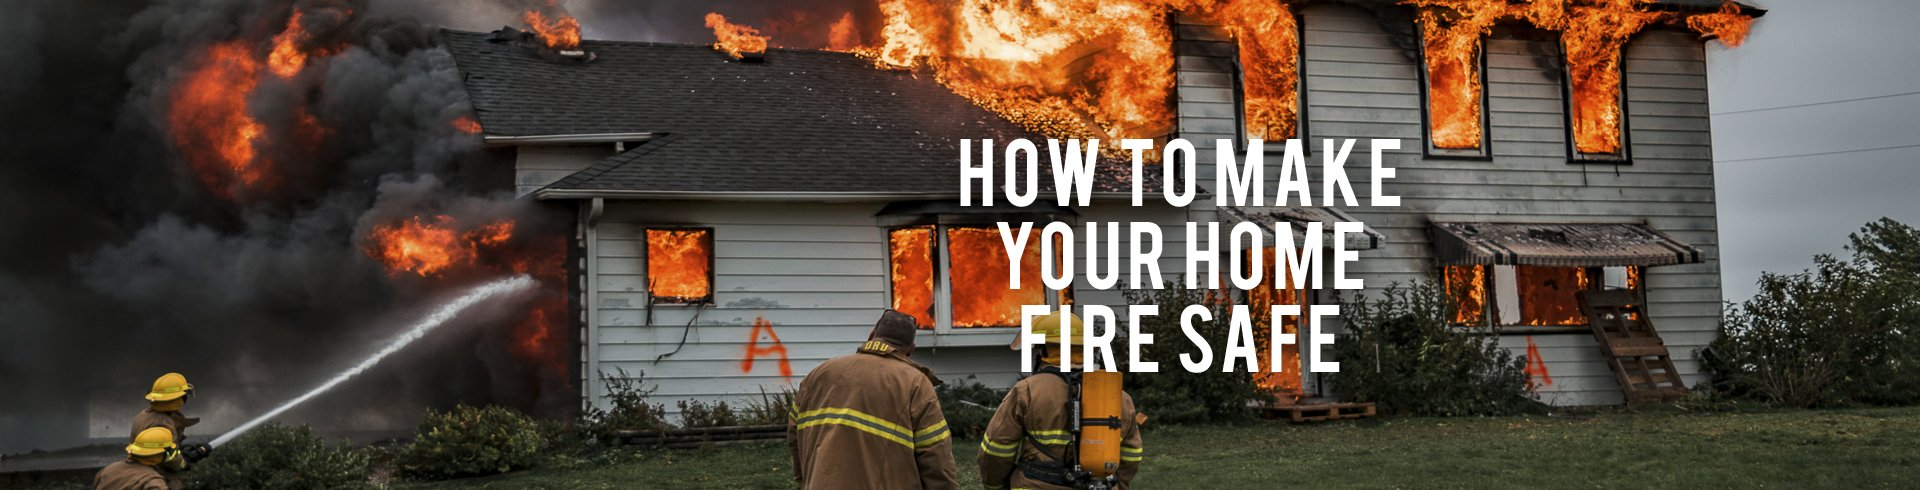 How To Make Your Home Fire Safe